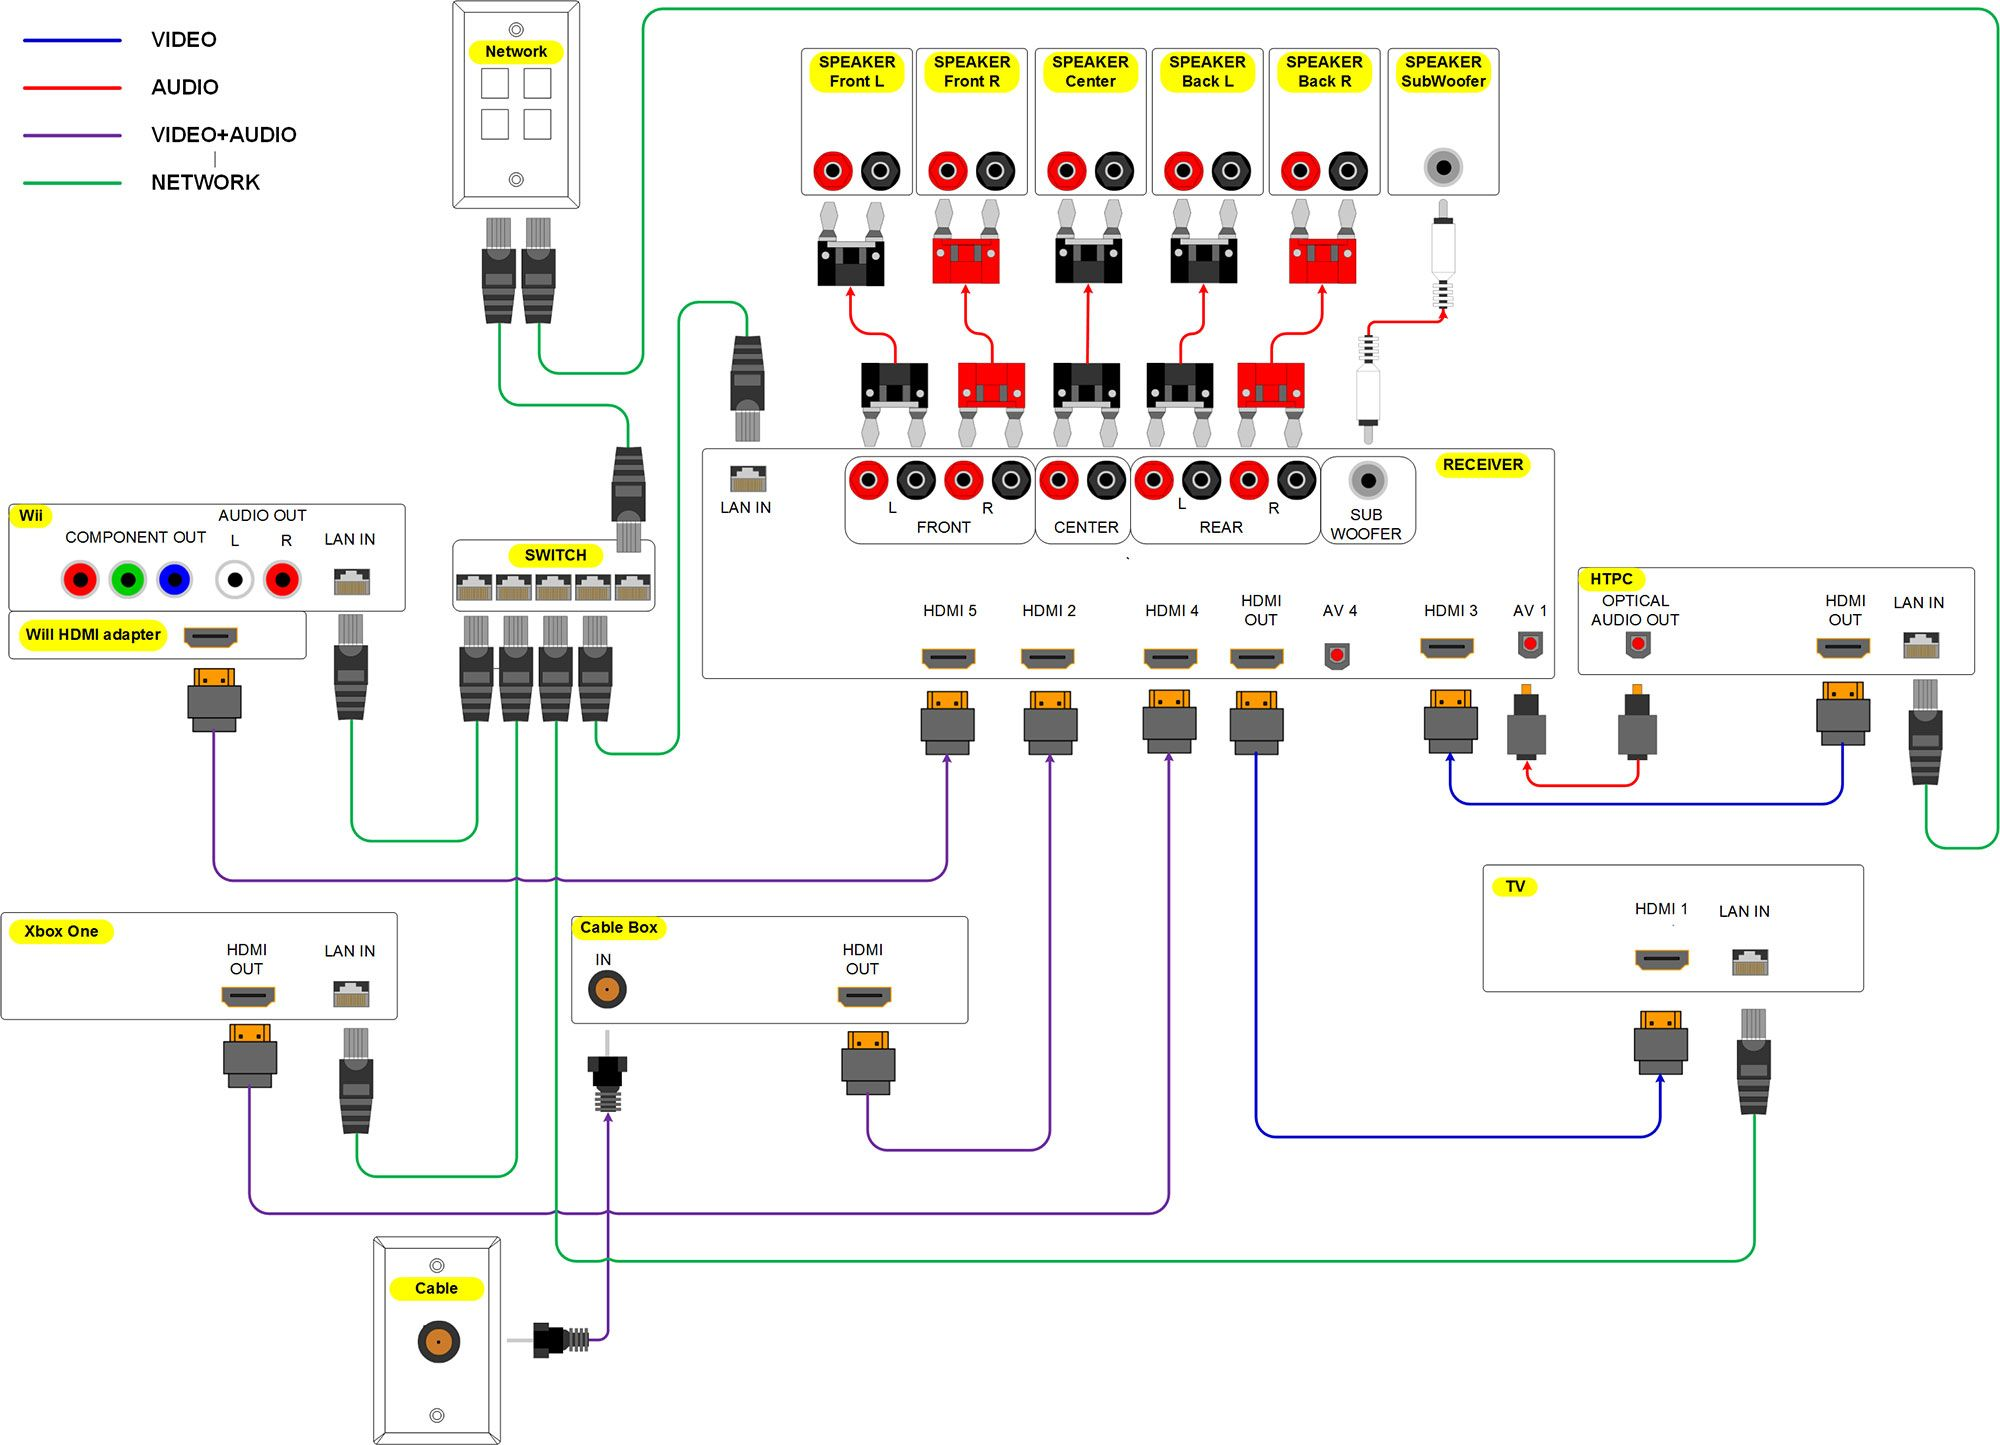 small resolution of hdmi audio wiring diagram wiring diagram autovehicle hdmi audio wire diagram wiring diagramsbasic home theater connection